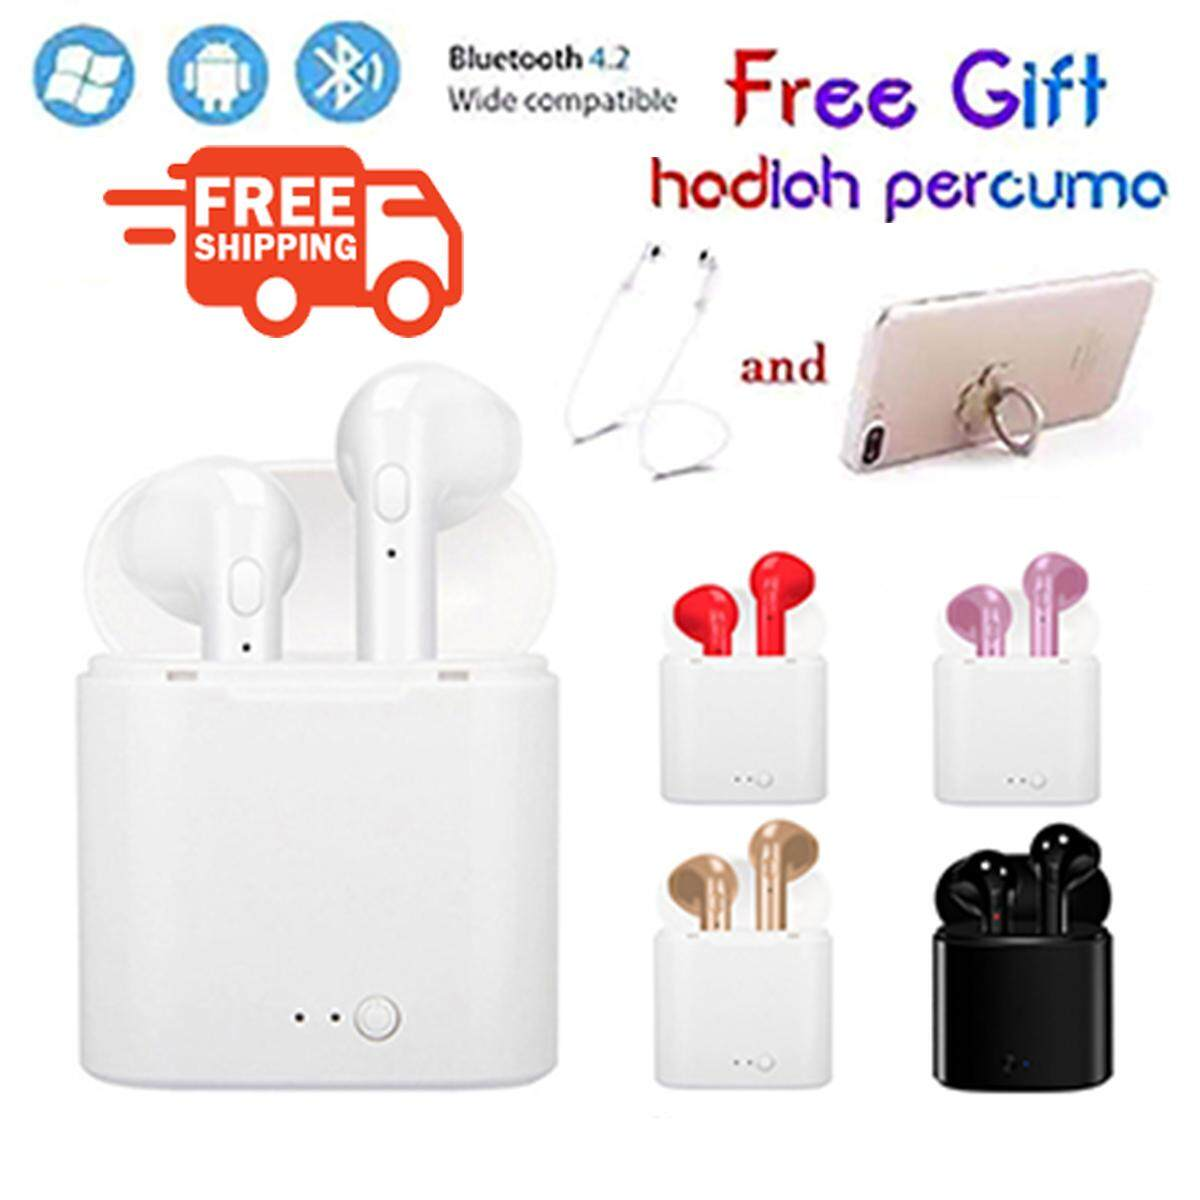 Wireless Headsets I7S TWS Earphones Bluetooth 5 0 Sports Headphones  Charging Case Stereo in-Ear Built-in Mic Headset Premium Sound with Deep  Bass For